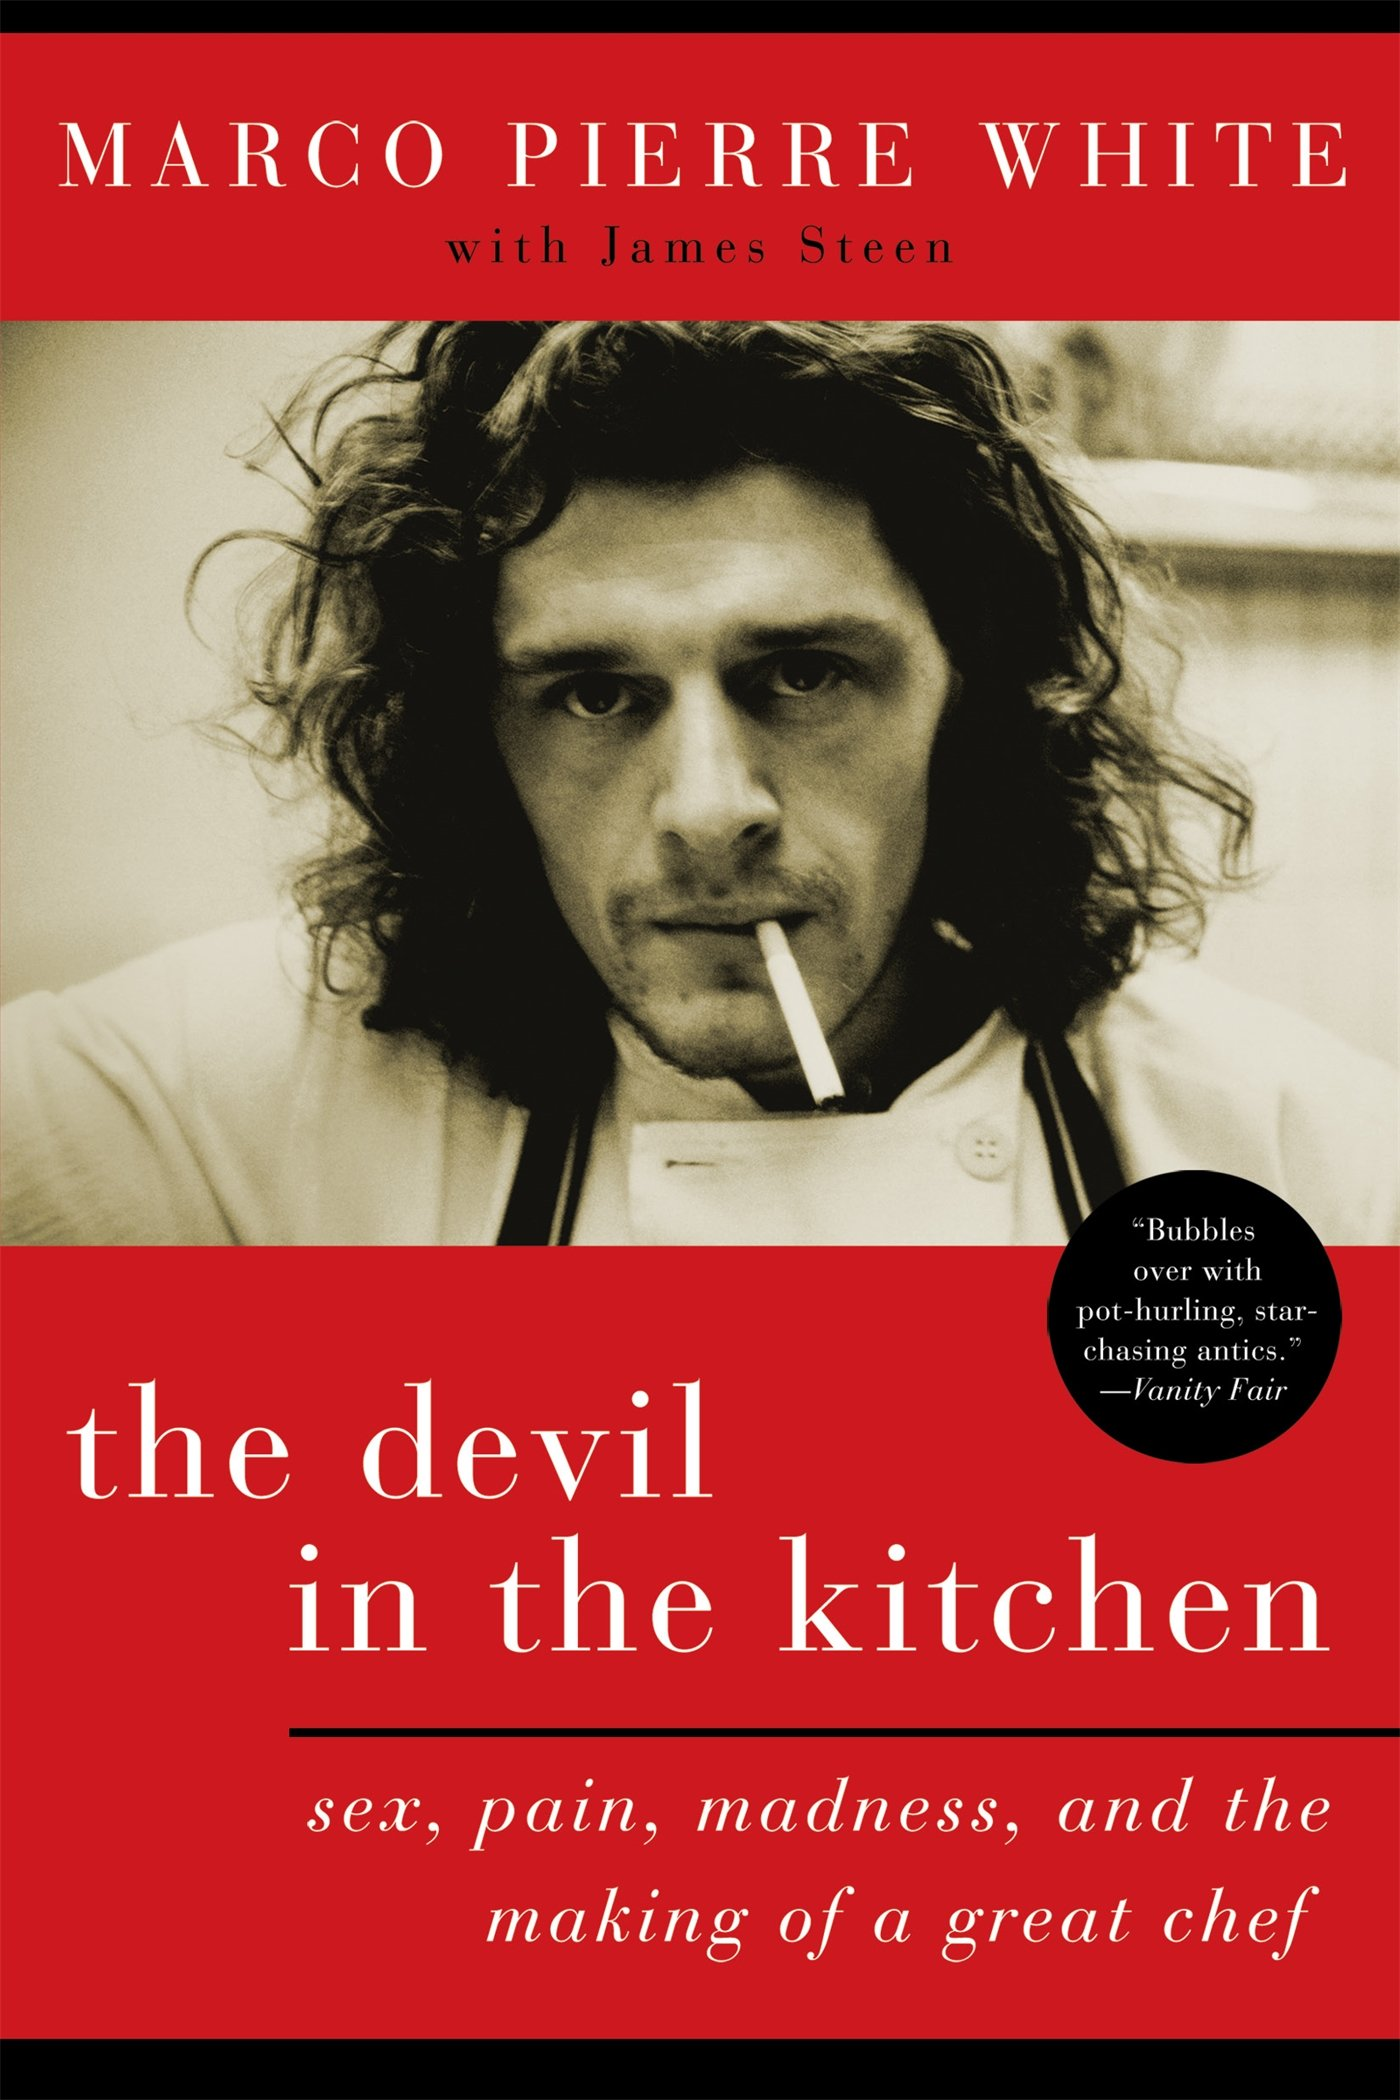 The devil in the kitchen sex pain madness and the making of a the devil in the kitchen sex pain madness and the making of a great chef marco pierre white 9781596914971 amazon books fandeluxe Gallery